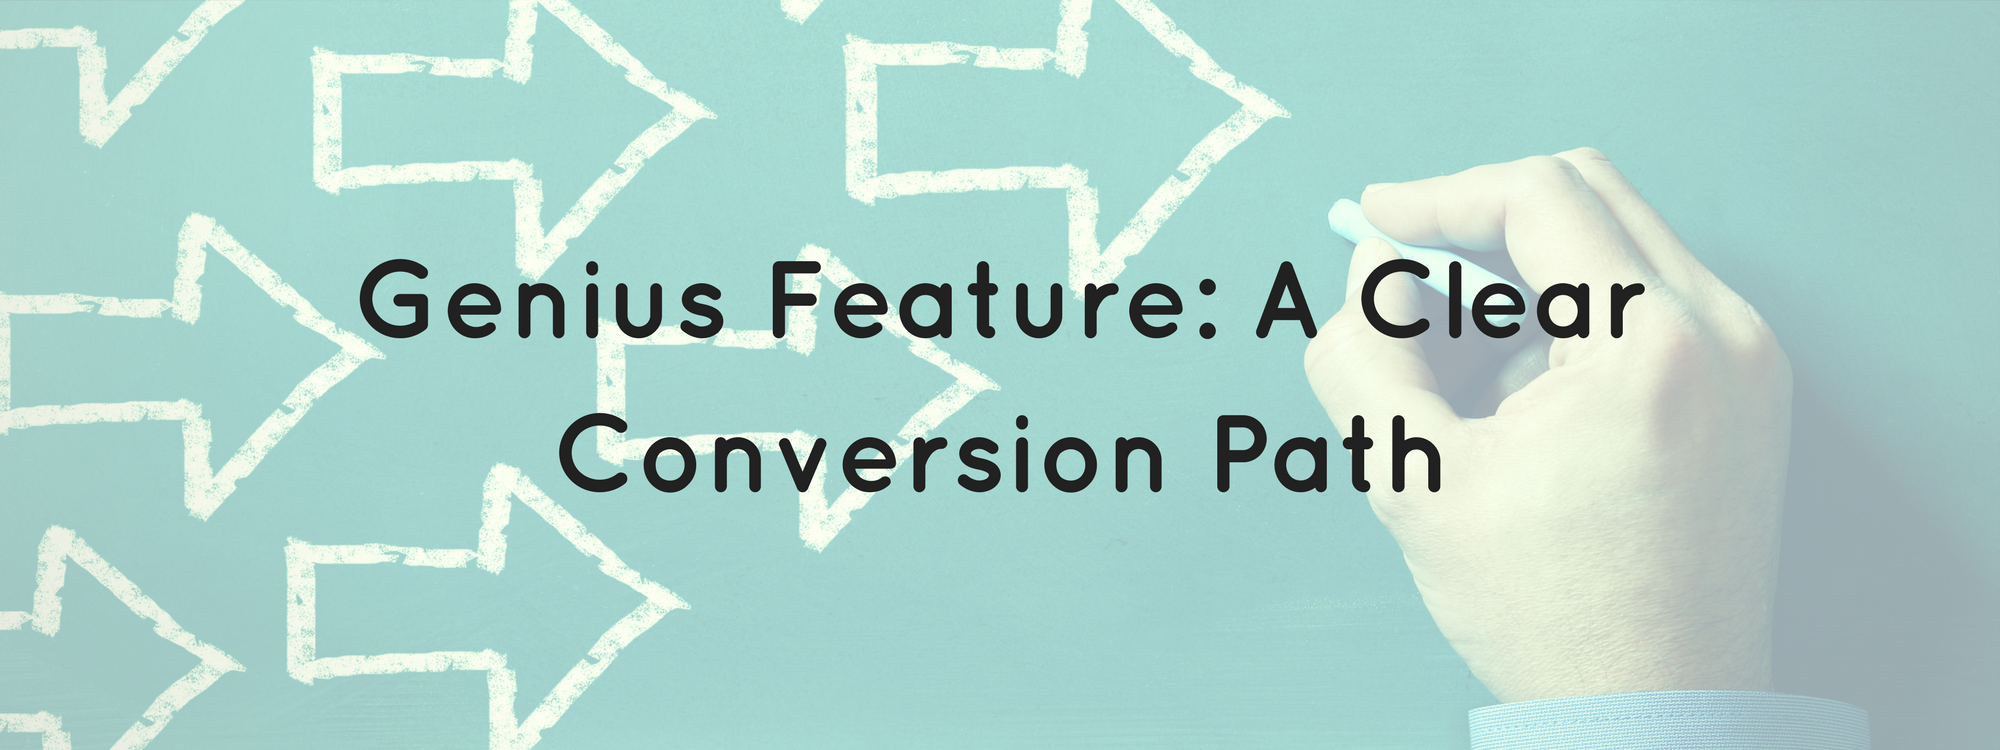 Websites need a clear conversion path